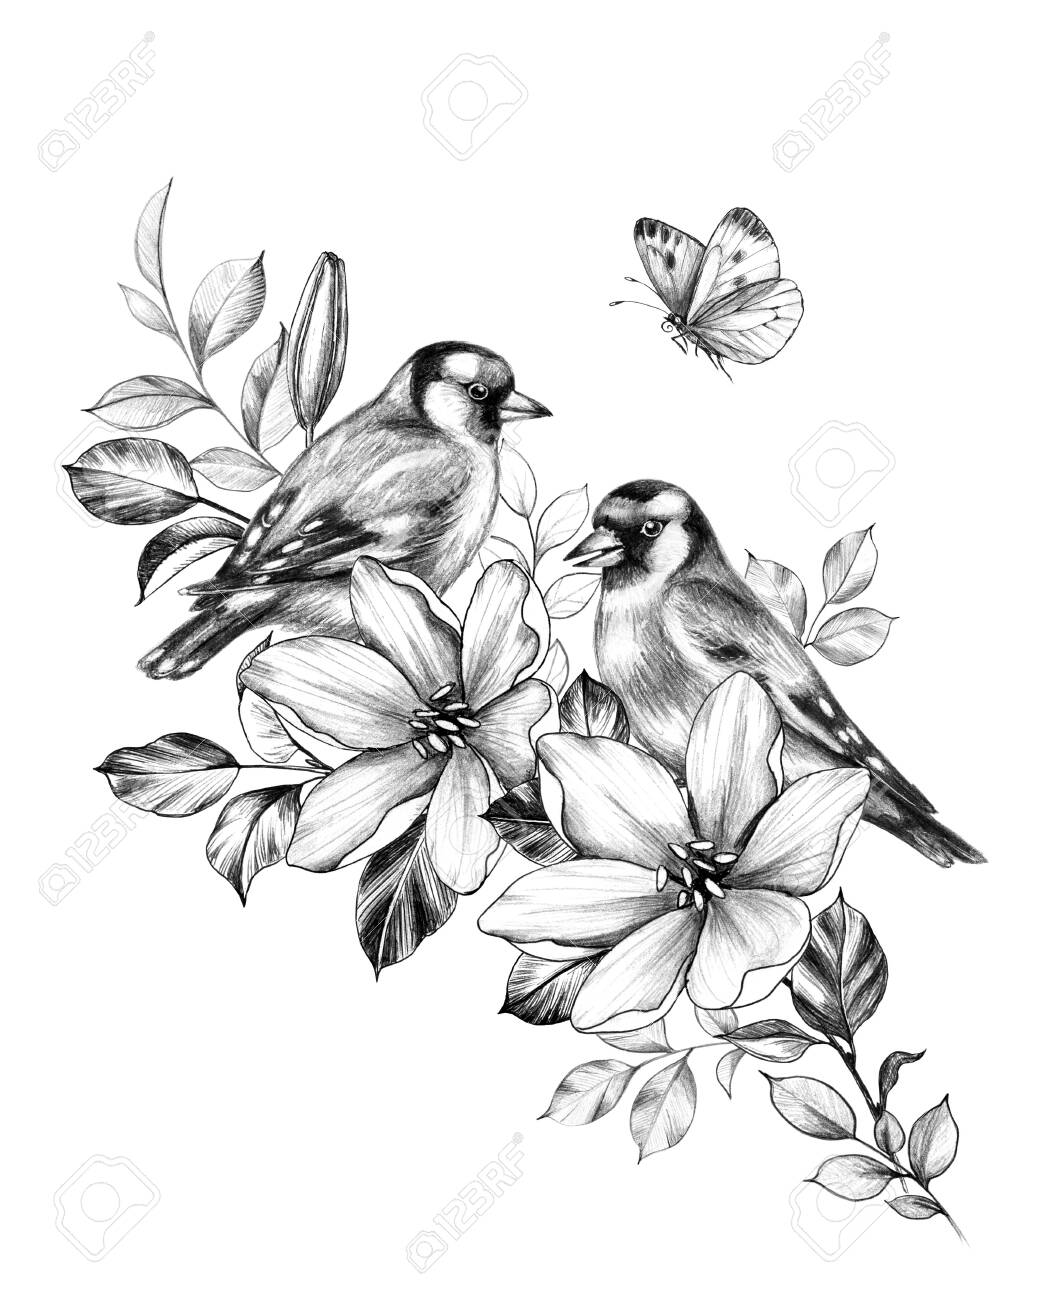 Hand drawn couple goldfinches sitting on branch with flowers